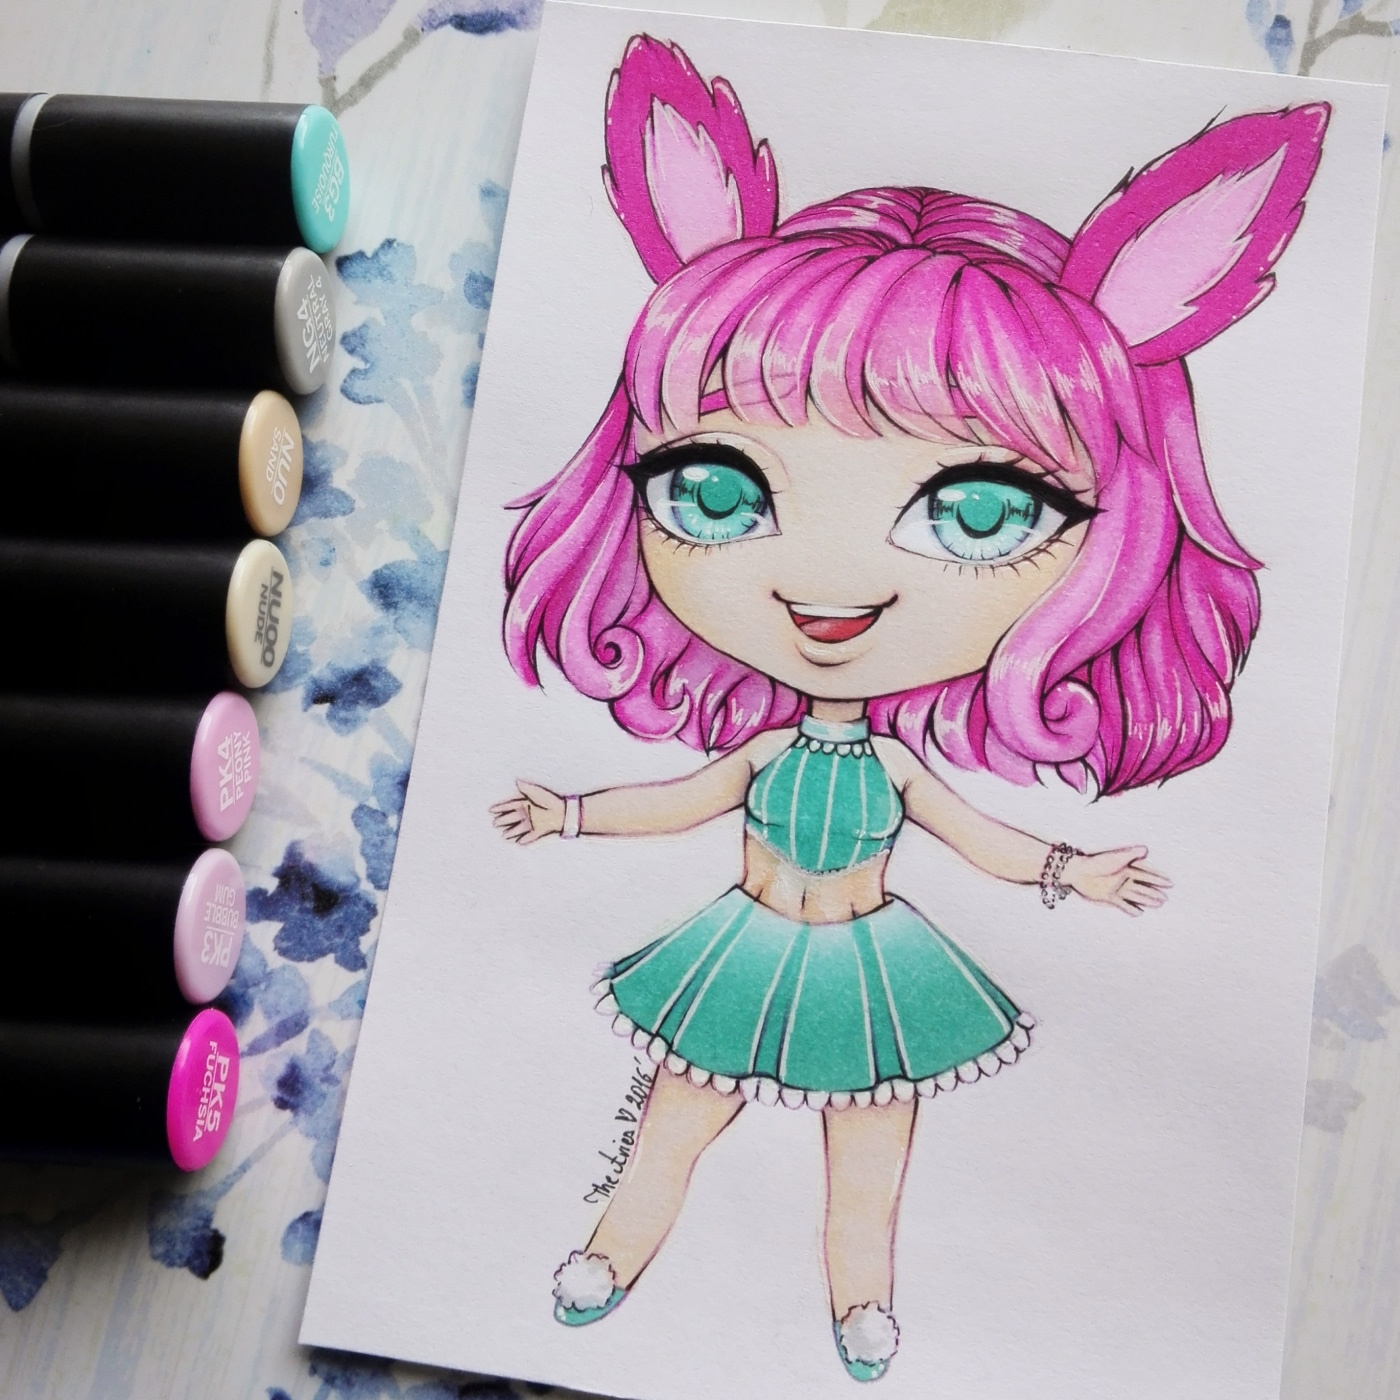 How to Draw Using Alcohol Markers